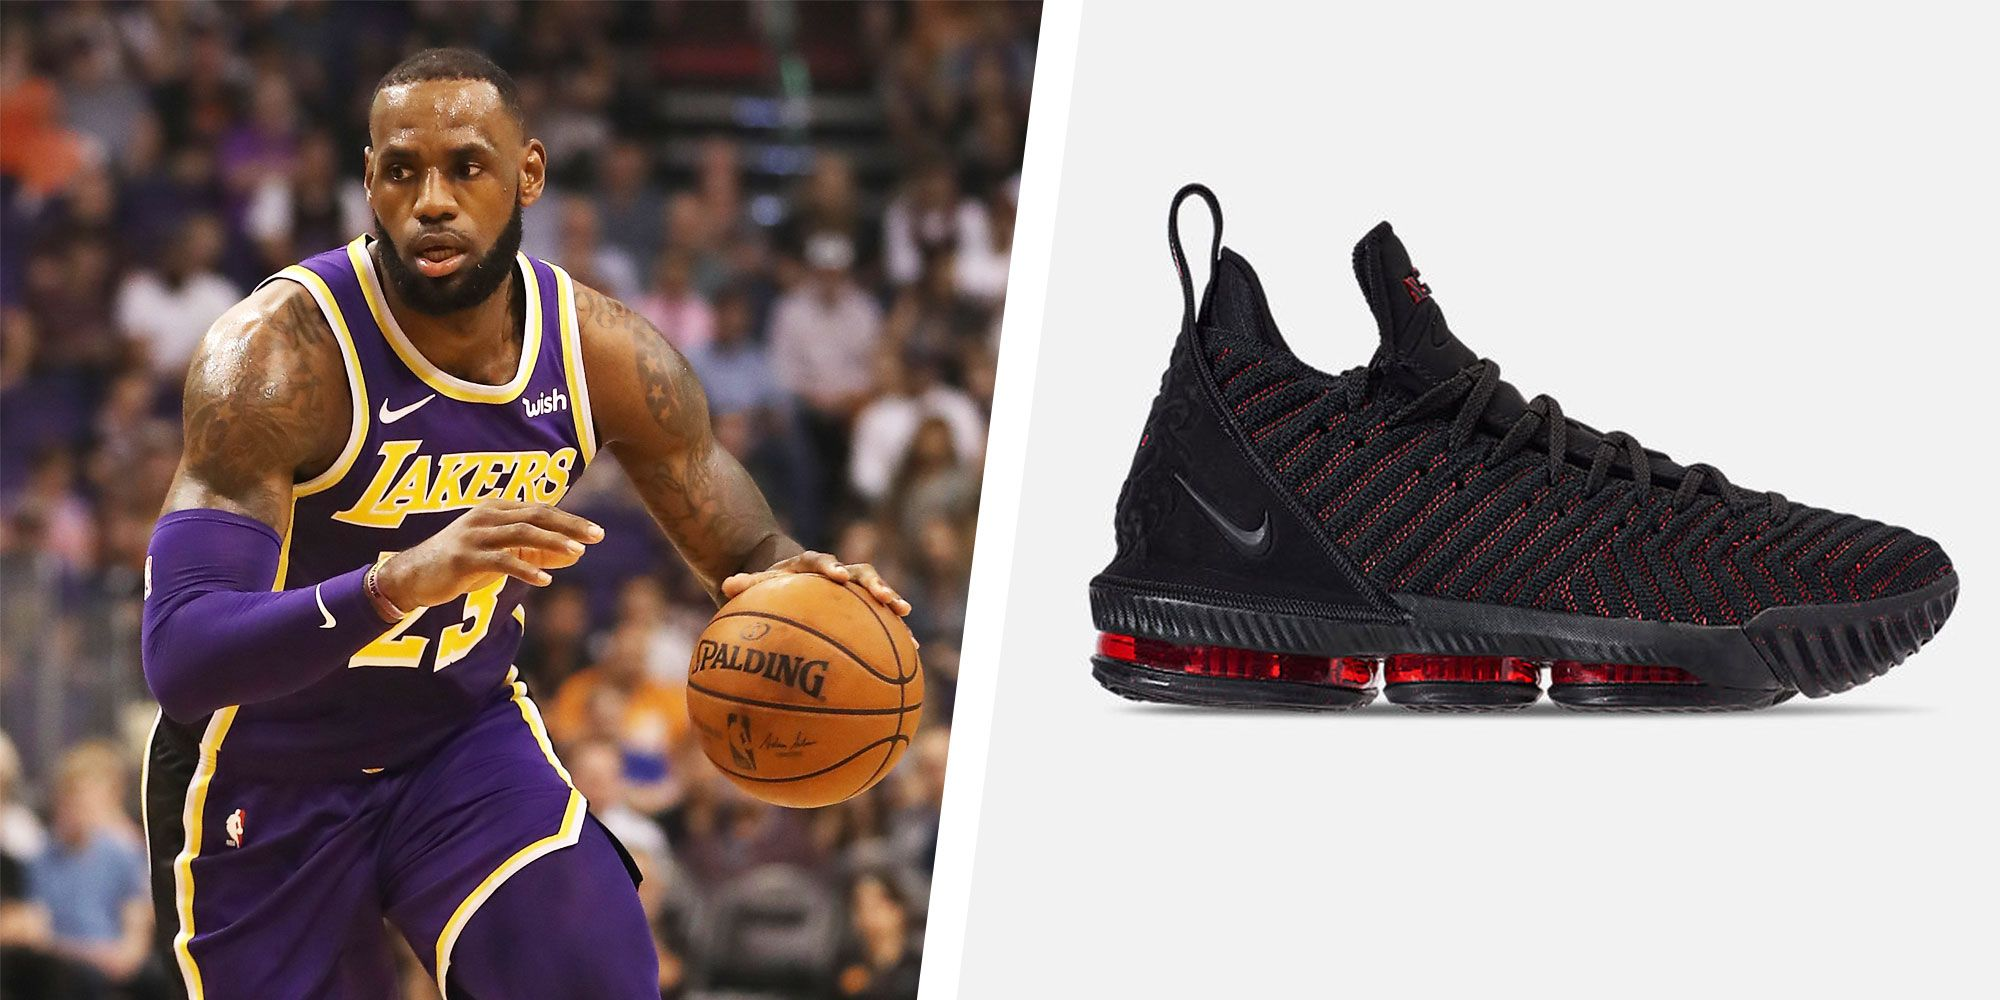 2c3c8faf5cdc LeBron James  16  Basketball Shoe - Must-Have Style Pick of the Week